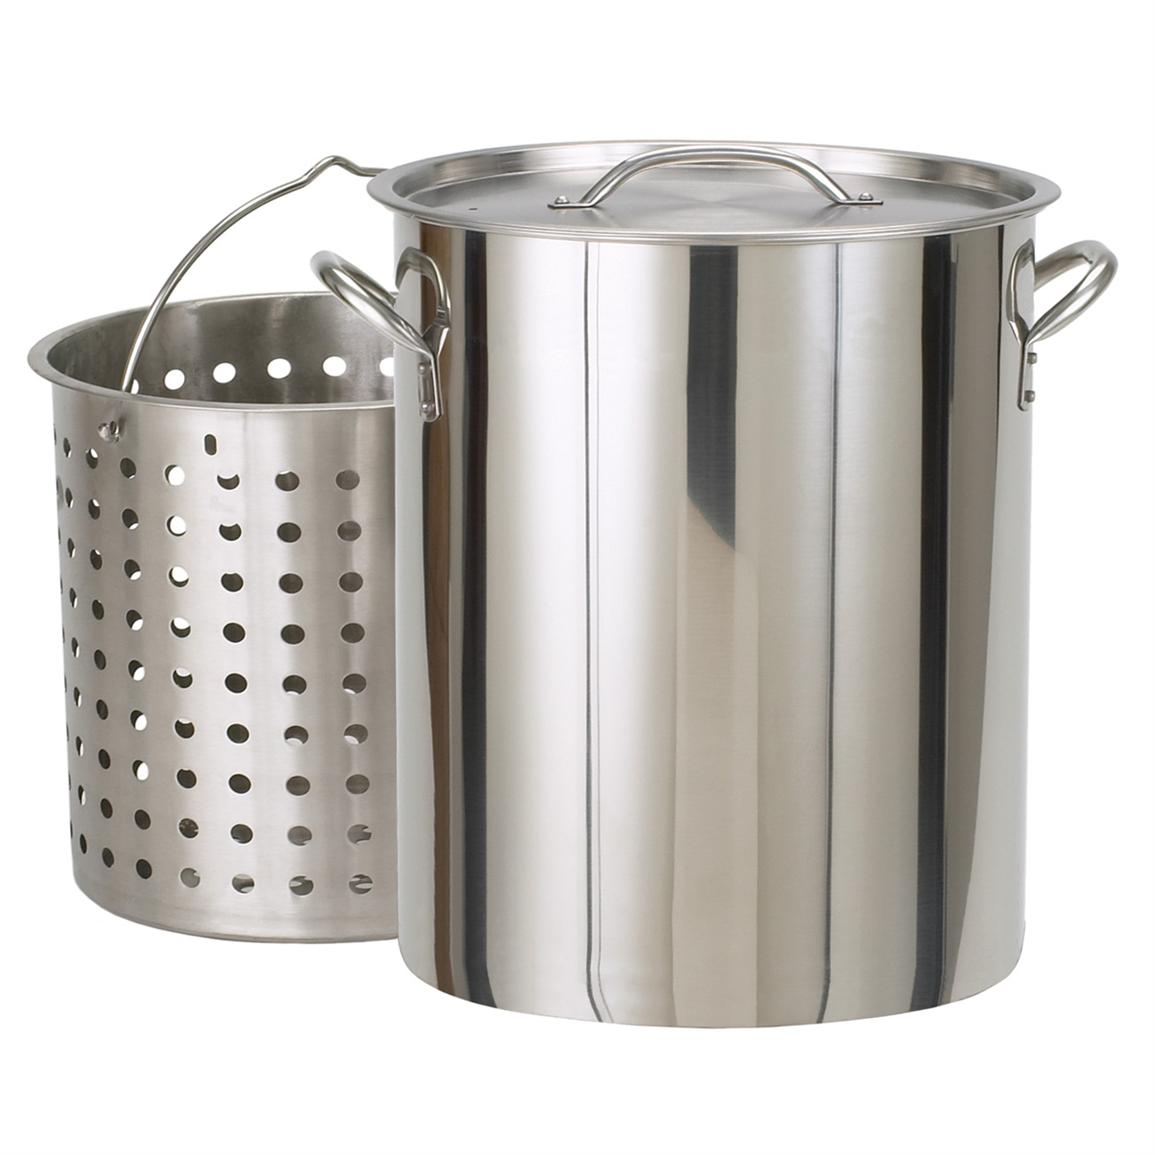 Bayou Classic 142-Quart Stainless Steel Stockpot